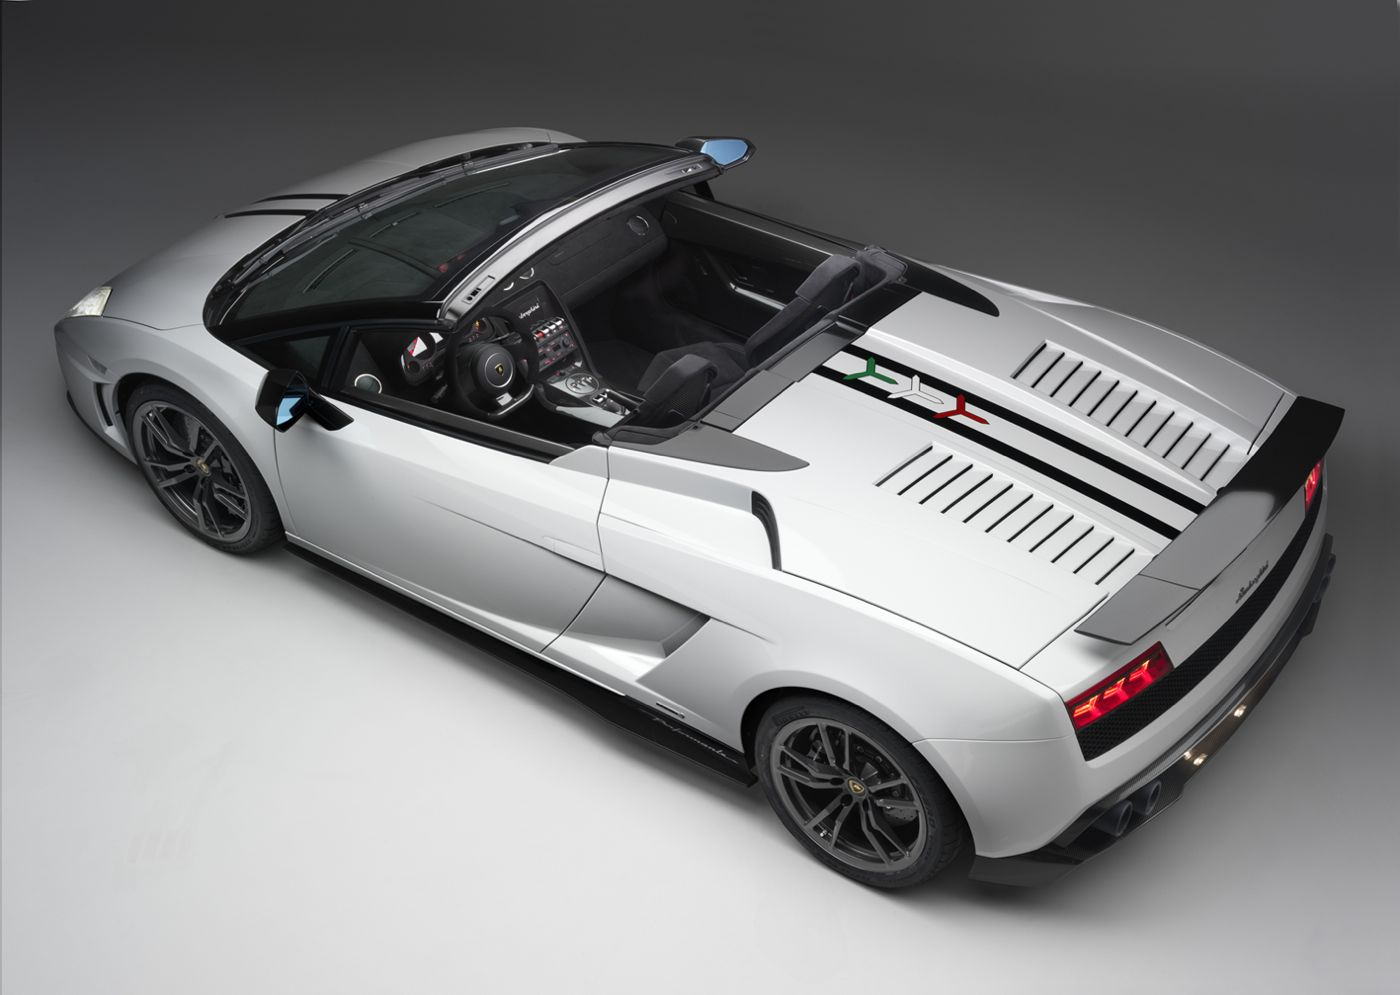 lamborghini-gallardo-lp-570-4-spyder-performante-09